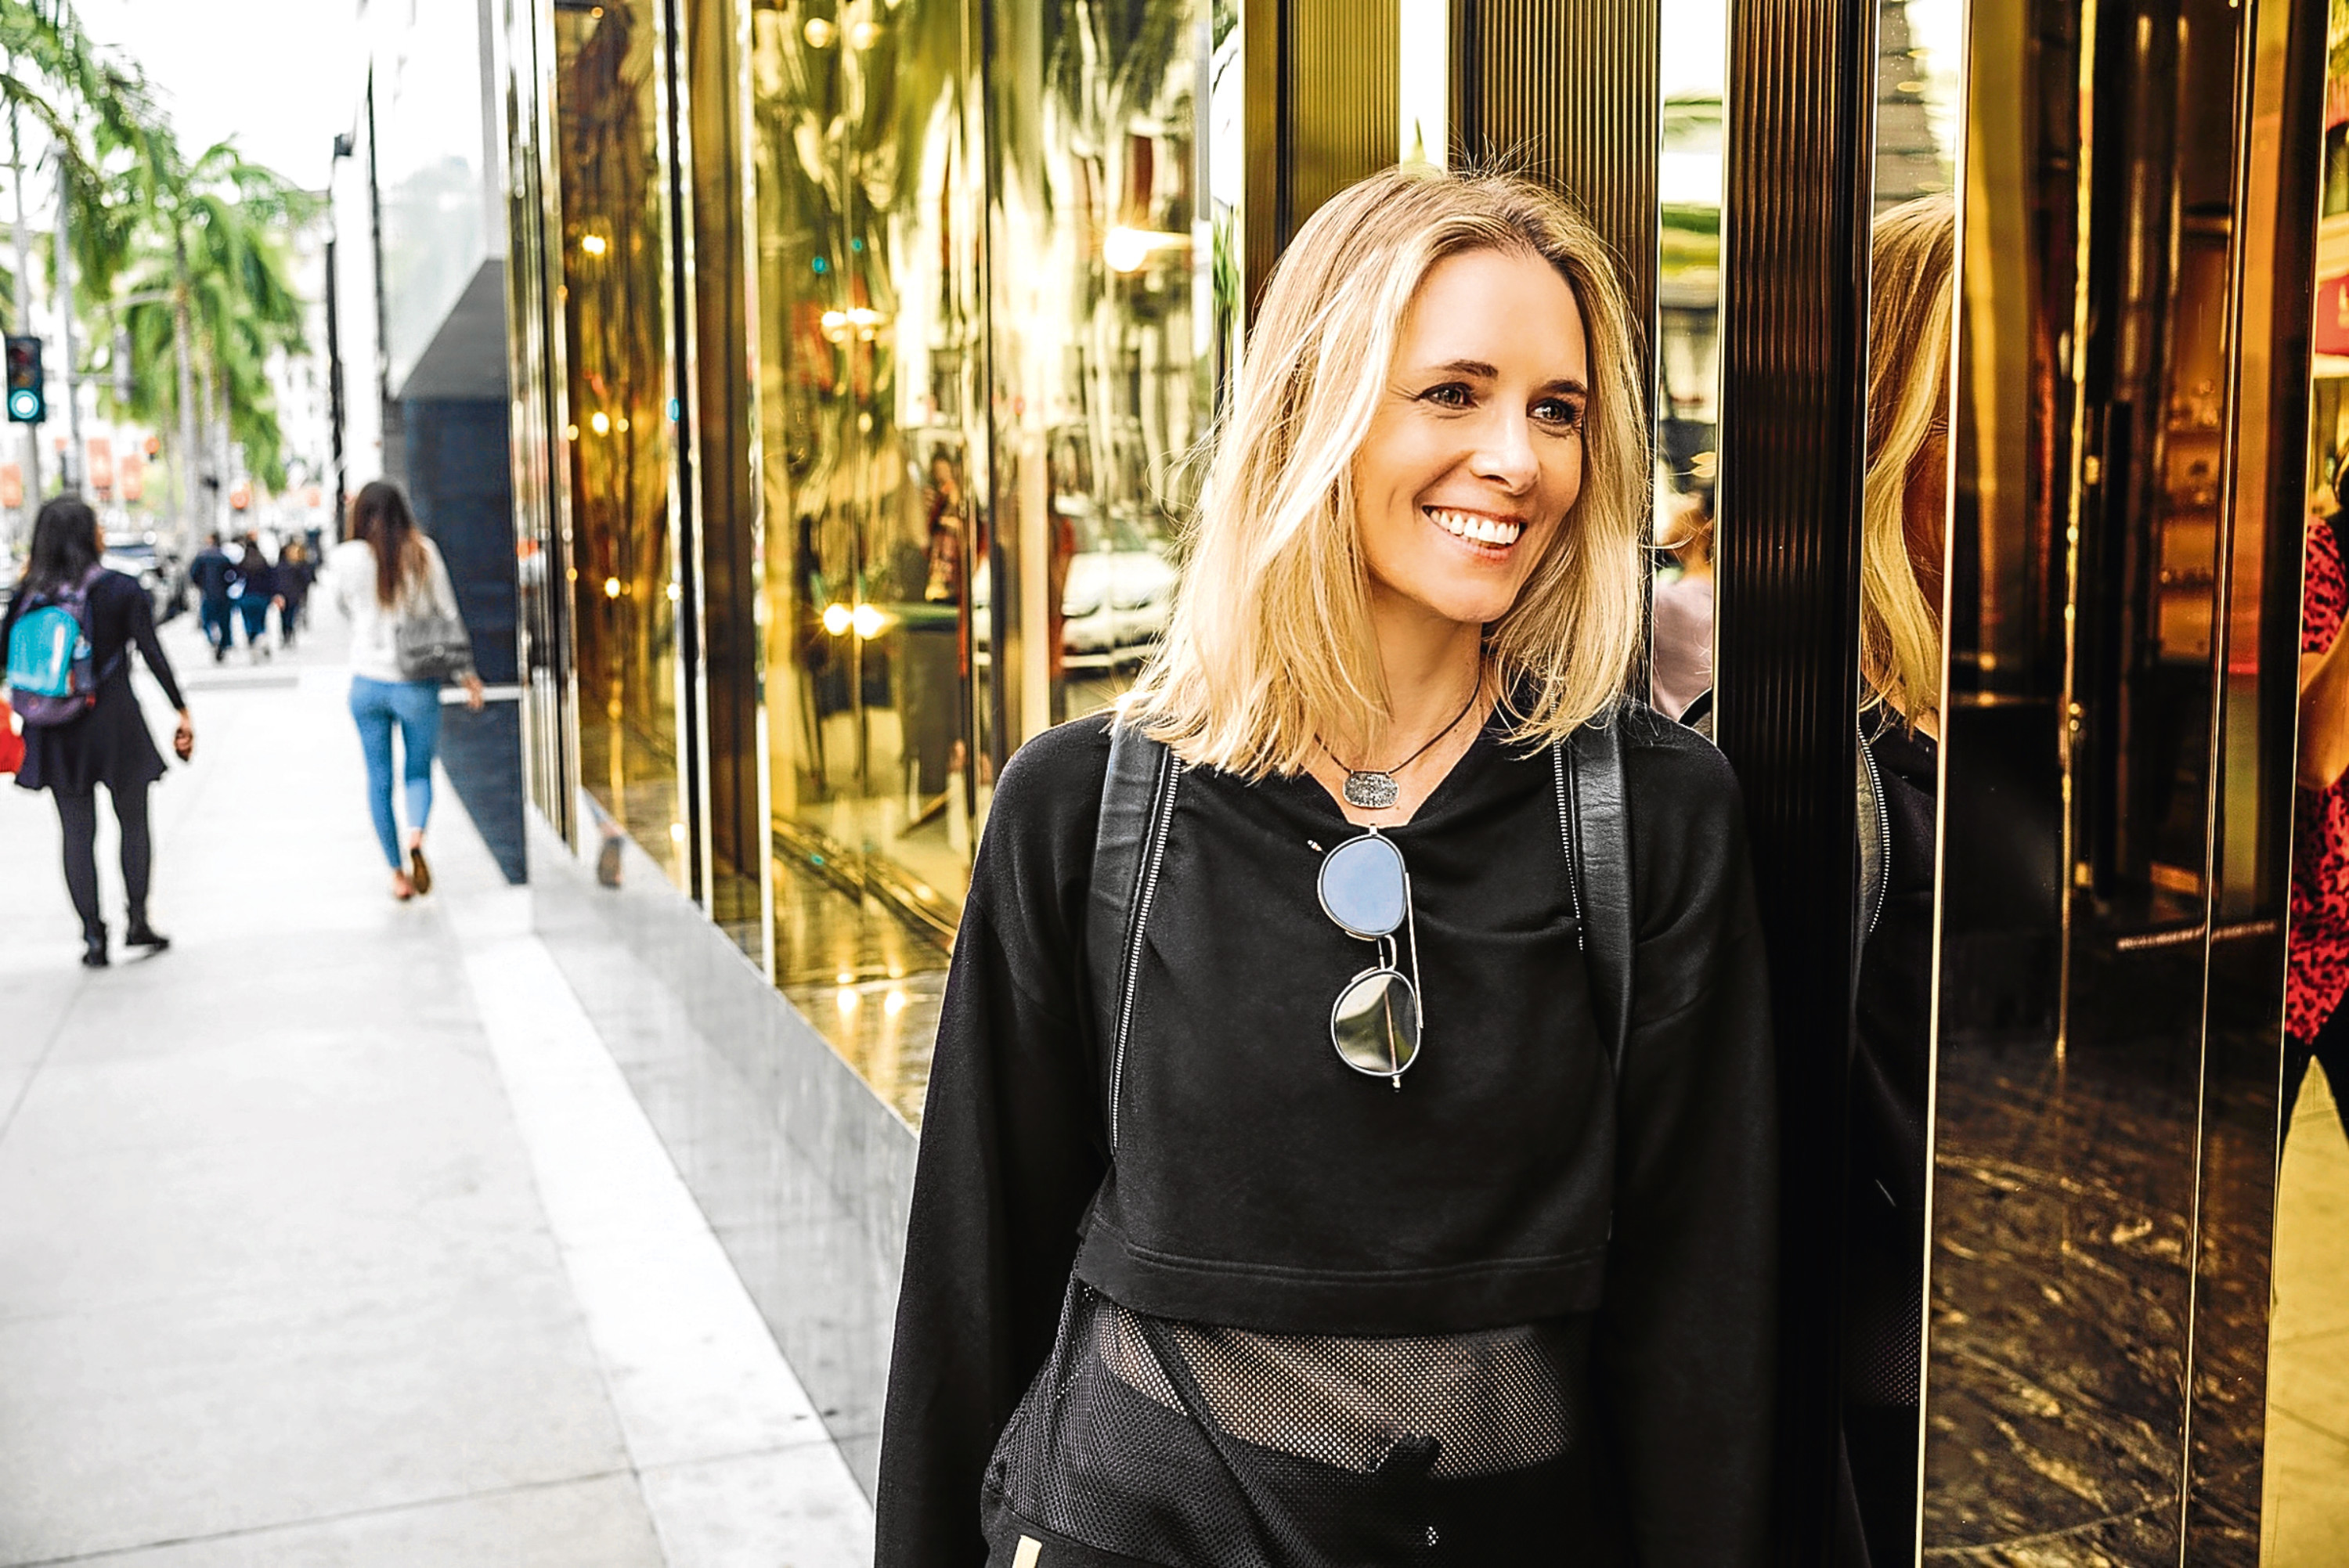 Stefani Grosse, founder and chief executive of luxury womens sports fashion brand Monreal London